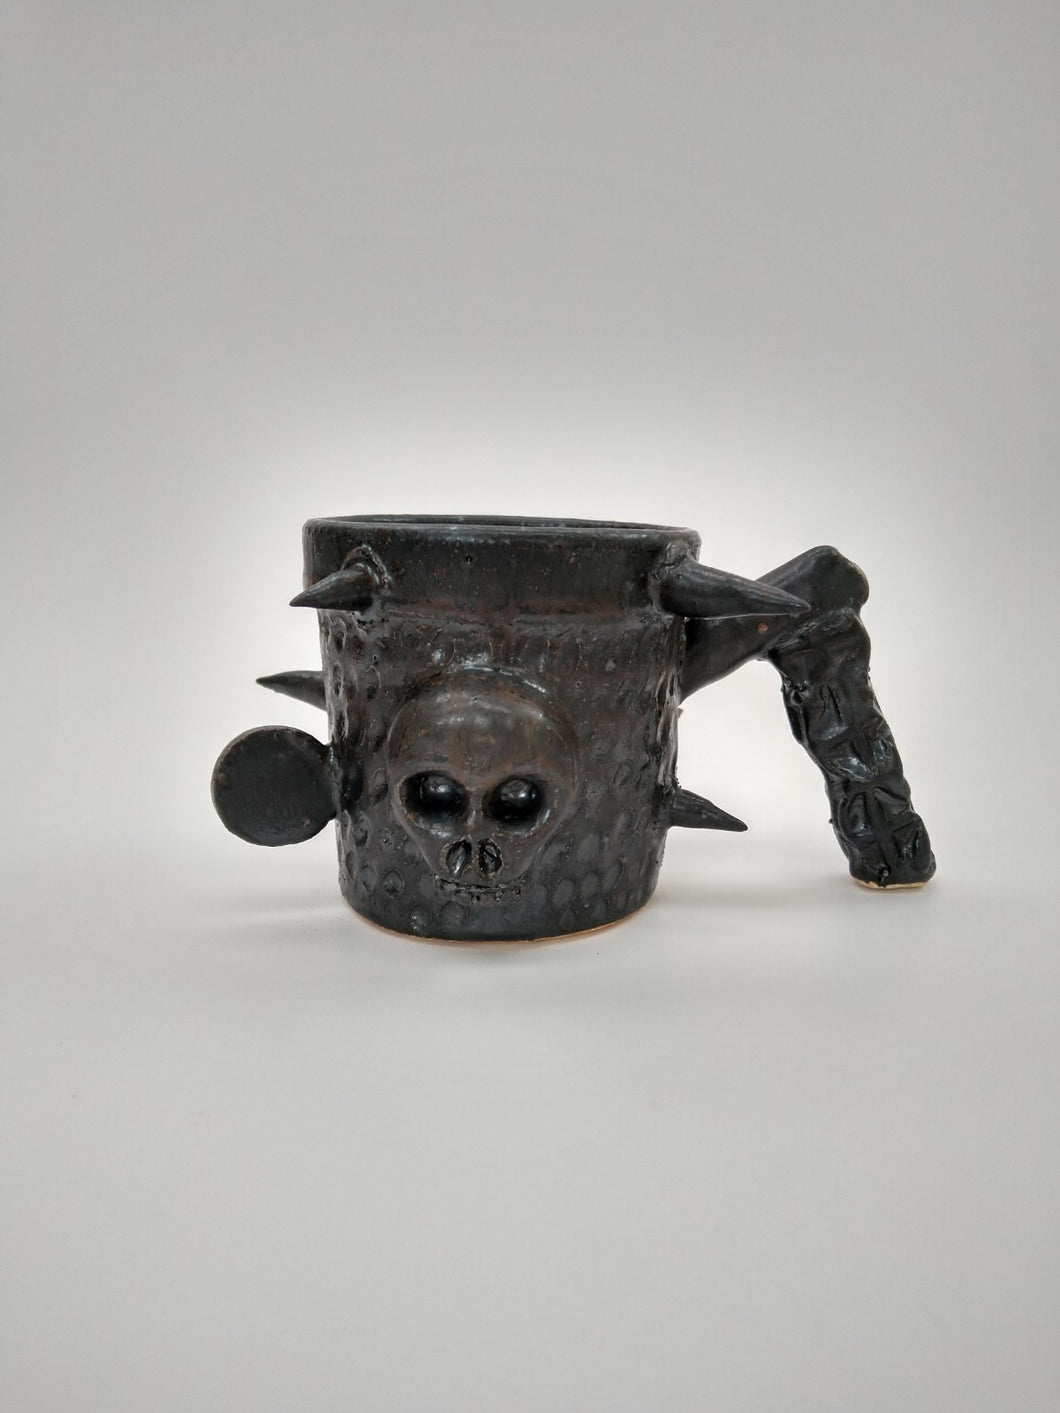 Trench Warfare Mug with Gunpowder Glaze